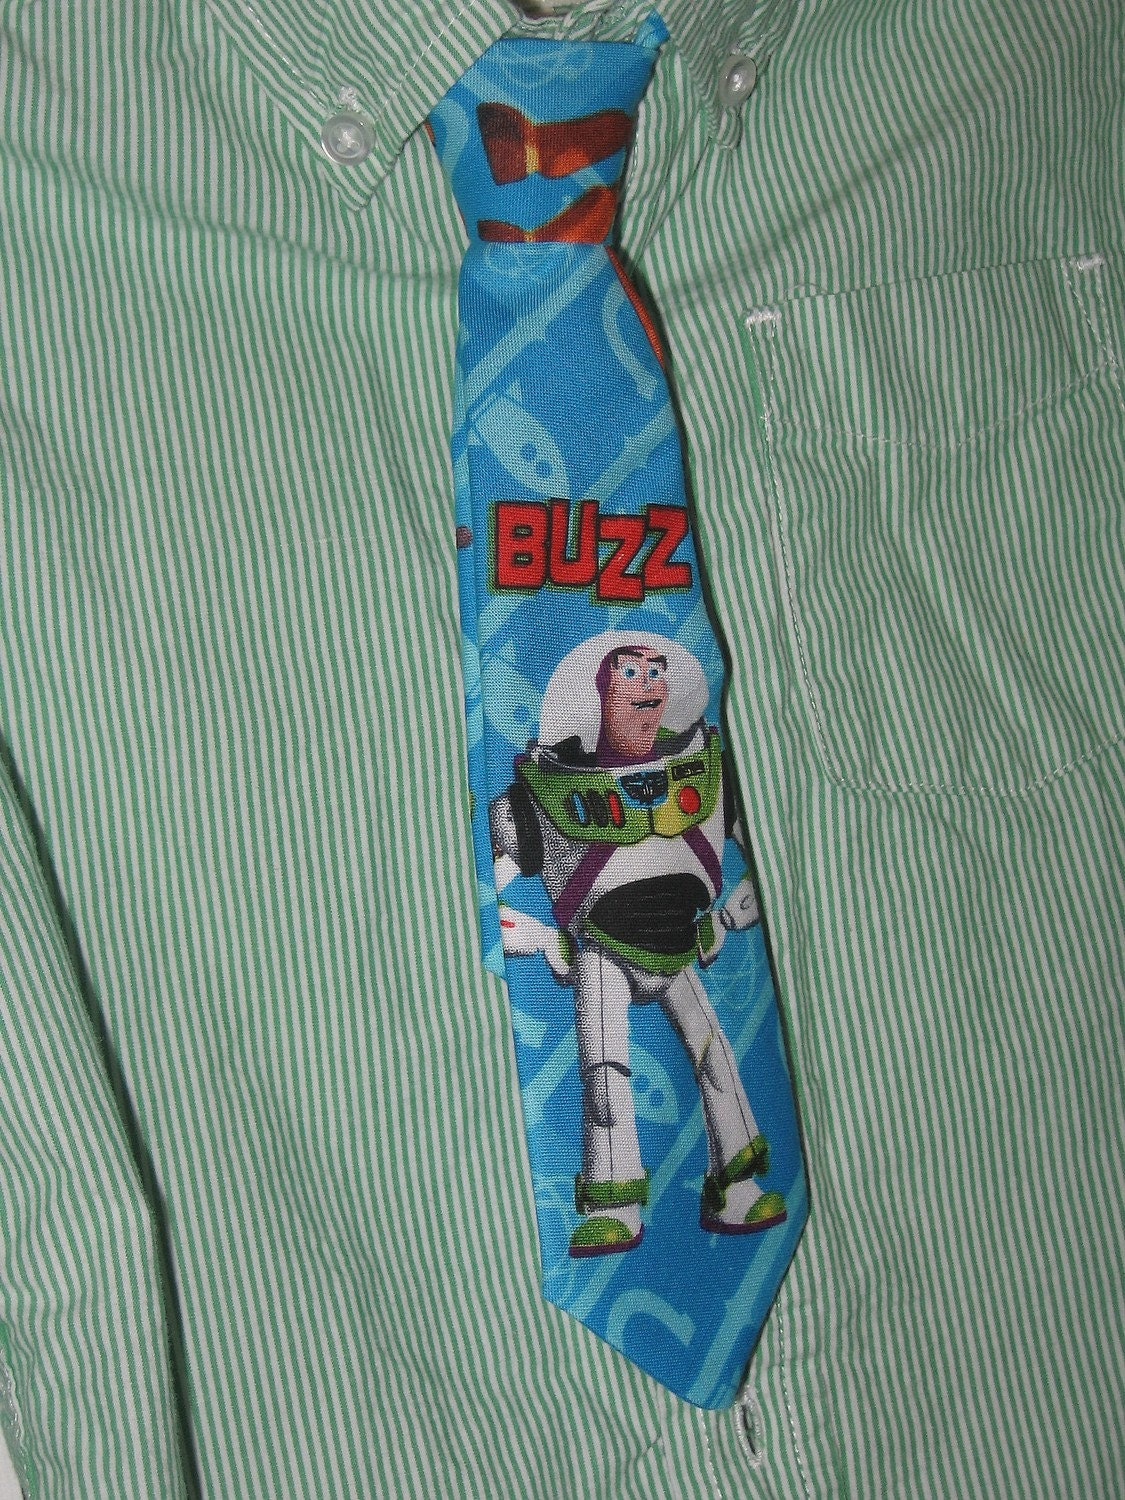 Buzz Lightyear Tie Boys